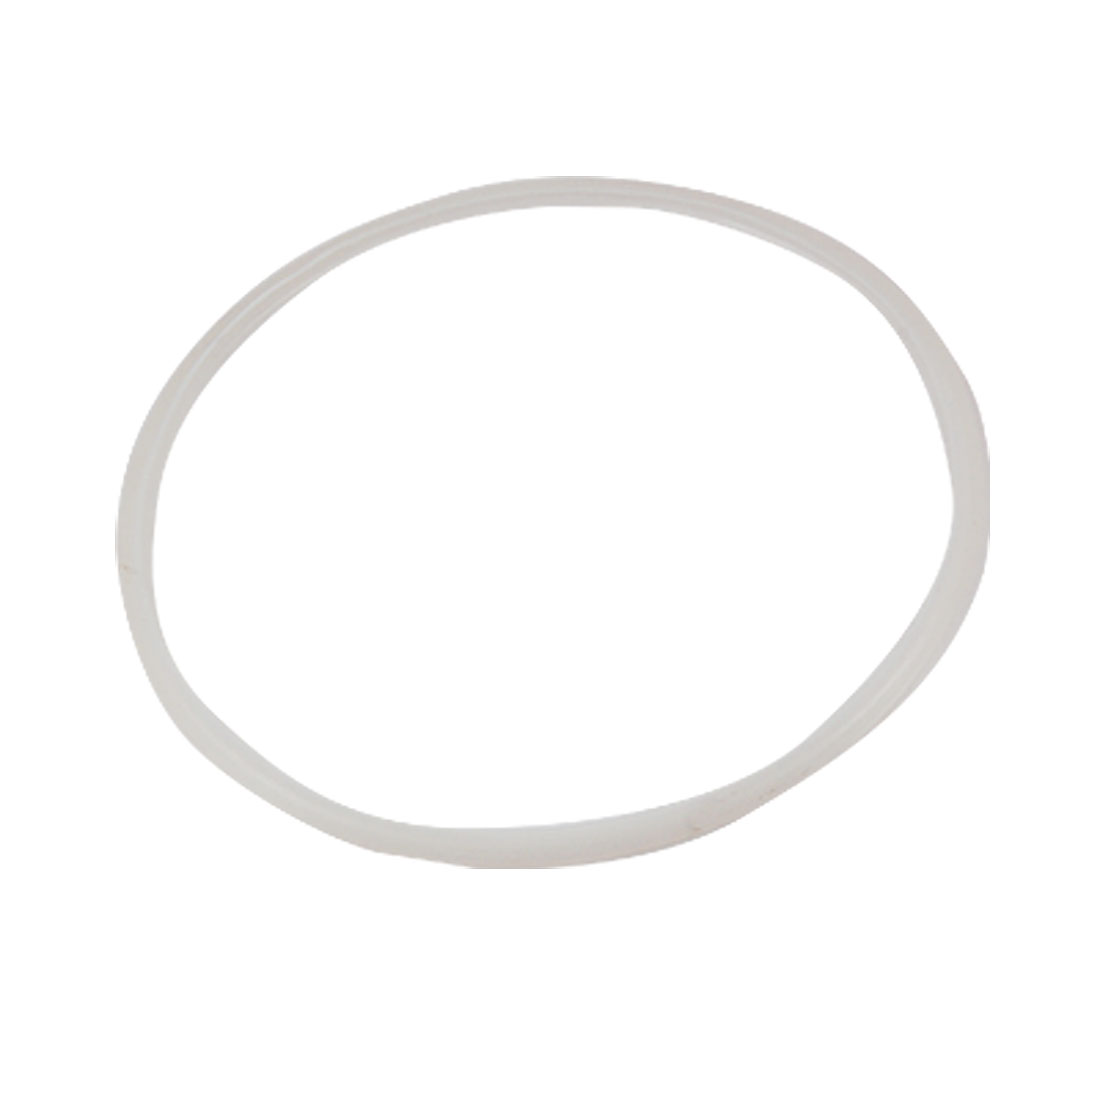 "12 3/5"" Inside Diameter Rubber Gasket Part Sealing Ring for Pressure Cooker"